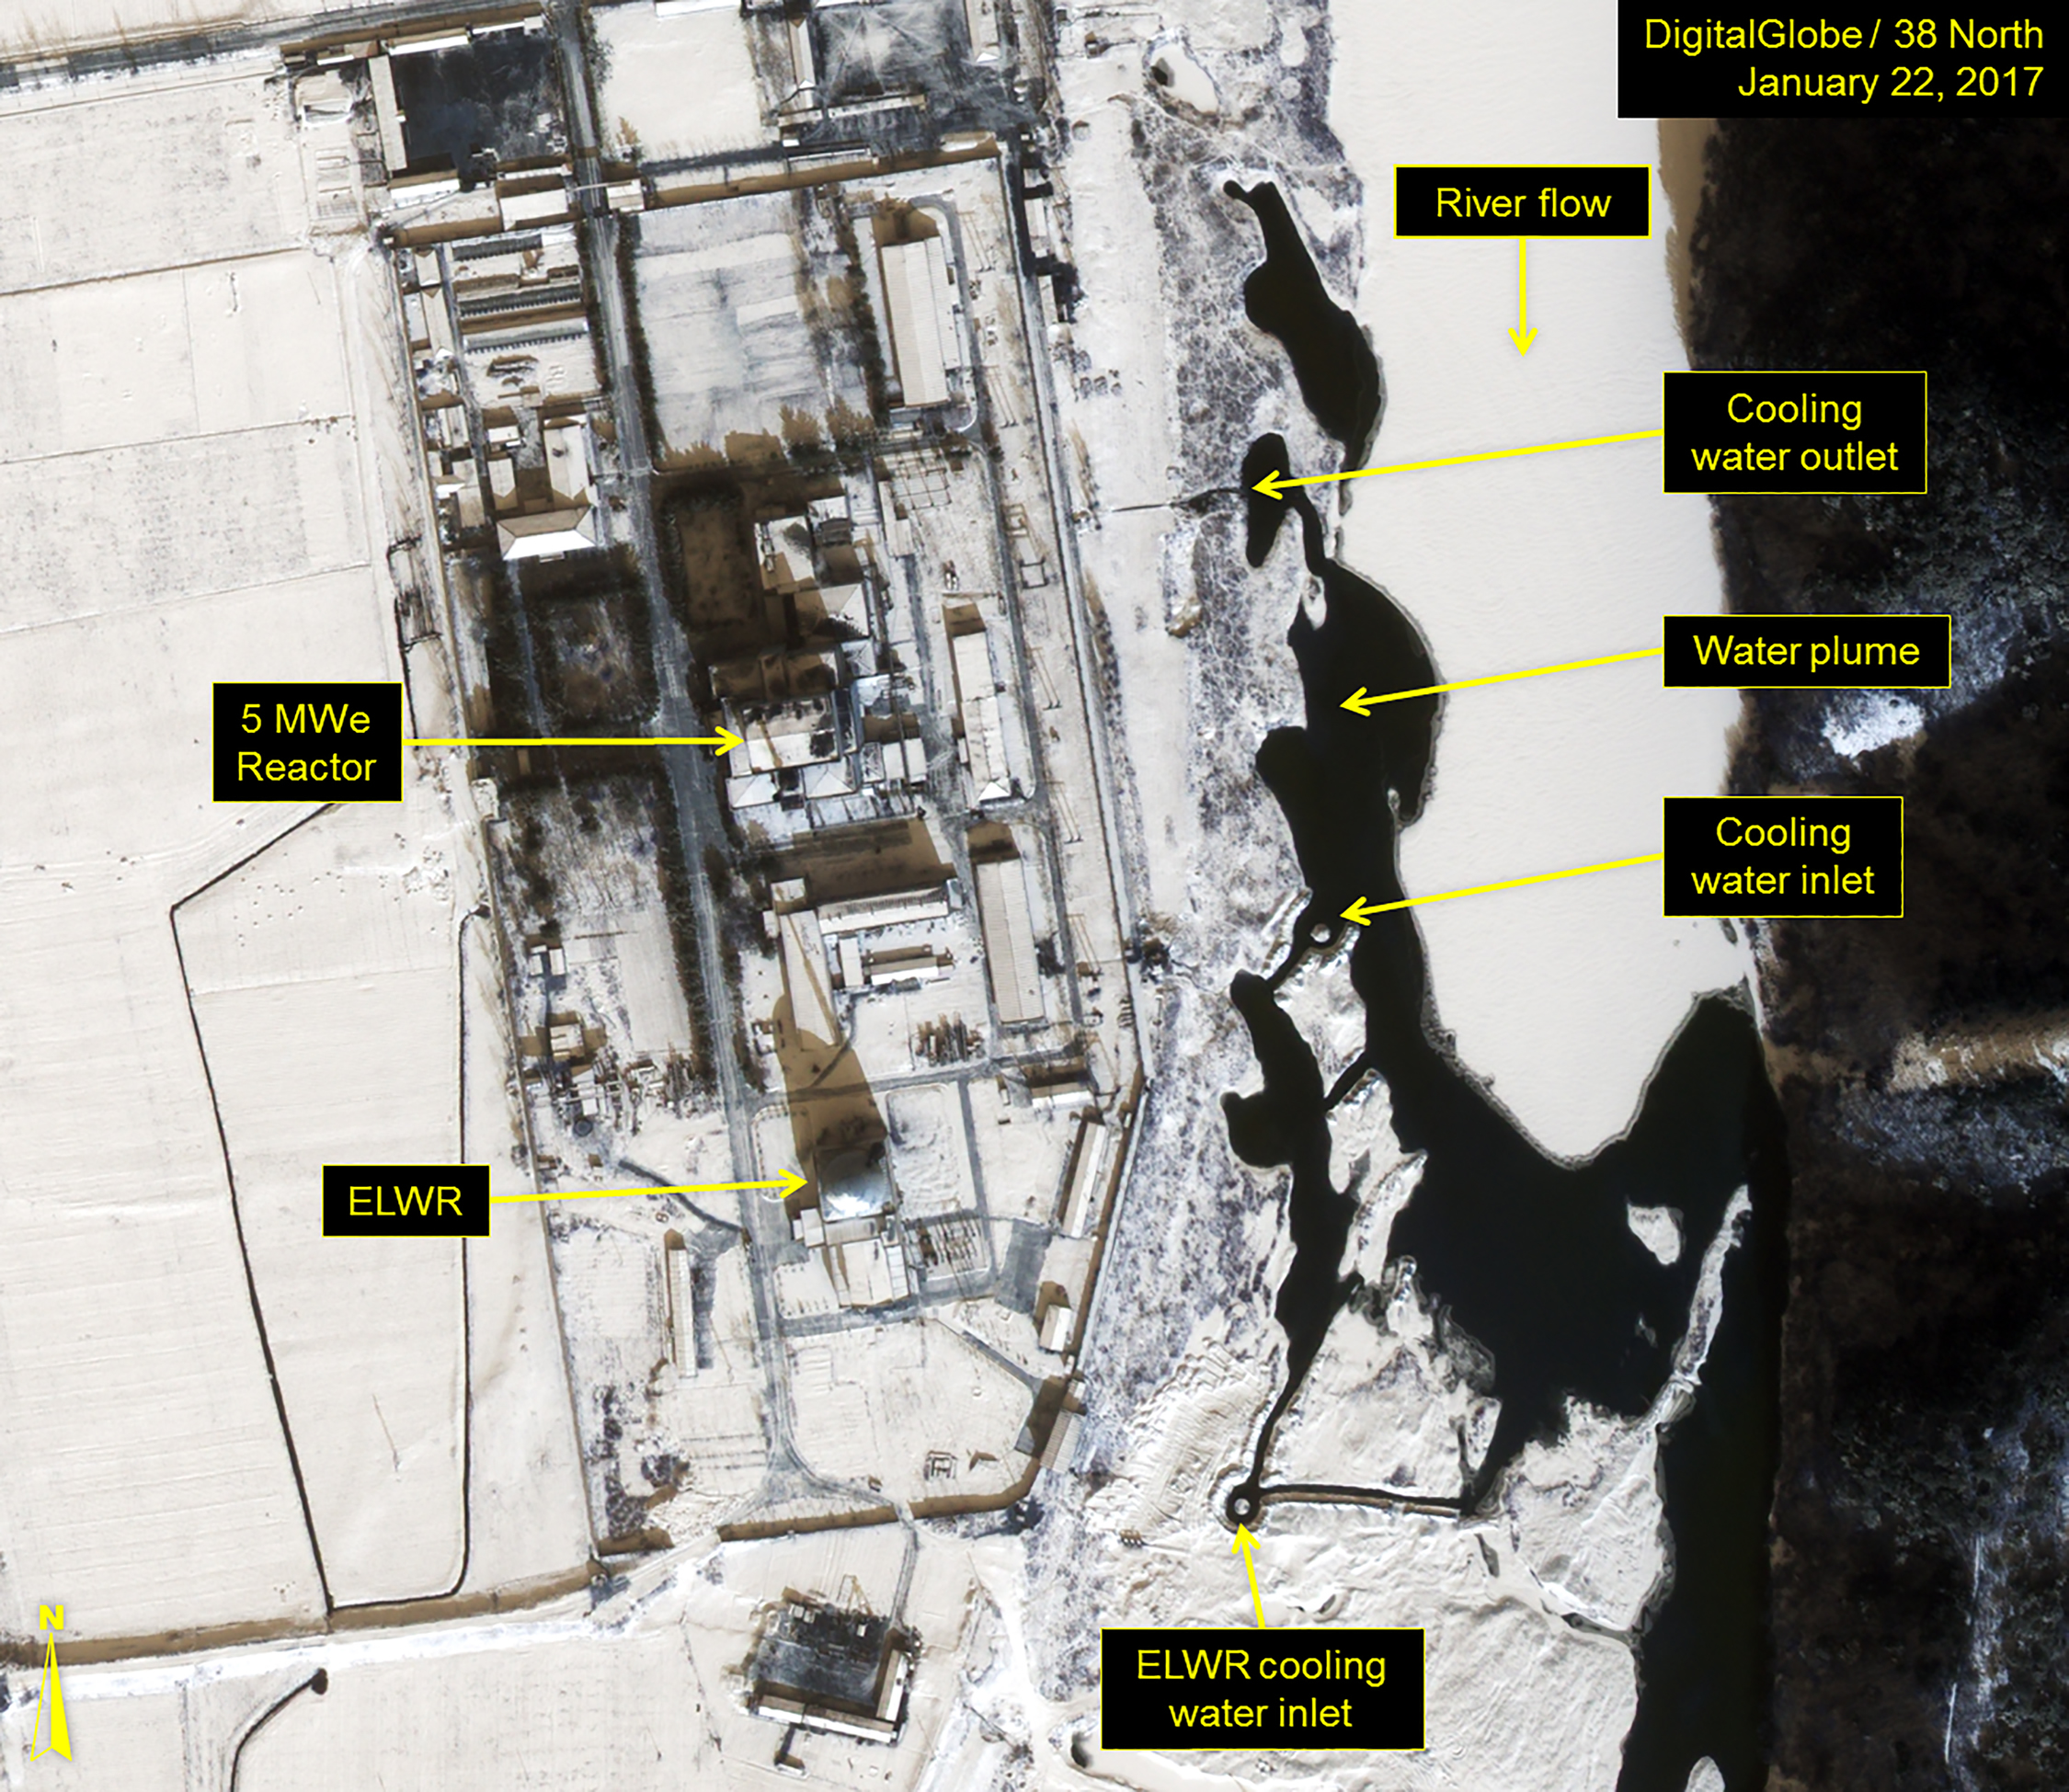 An analysis of new satellite imagery from 38 North, a North Korea tracking project associated with the School of Advanced International Studies at Johns Hopkins University, concludes that country is preparing to restart the reactor at the Yongbyon nuclear facility. The images show that most of a river near the reactor is frozen over, except for where water originating from a reactor outlet mixes with the river -- indicating that the reactor is likely operational.